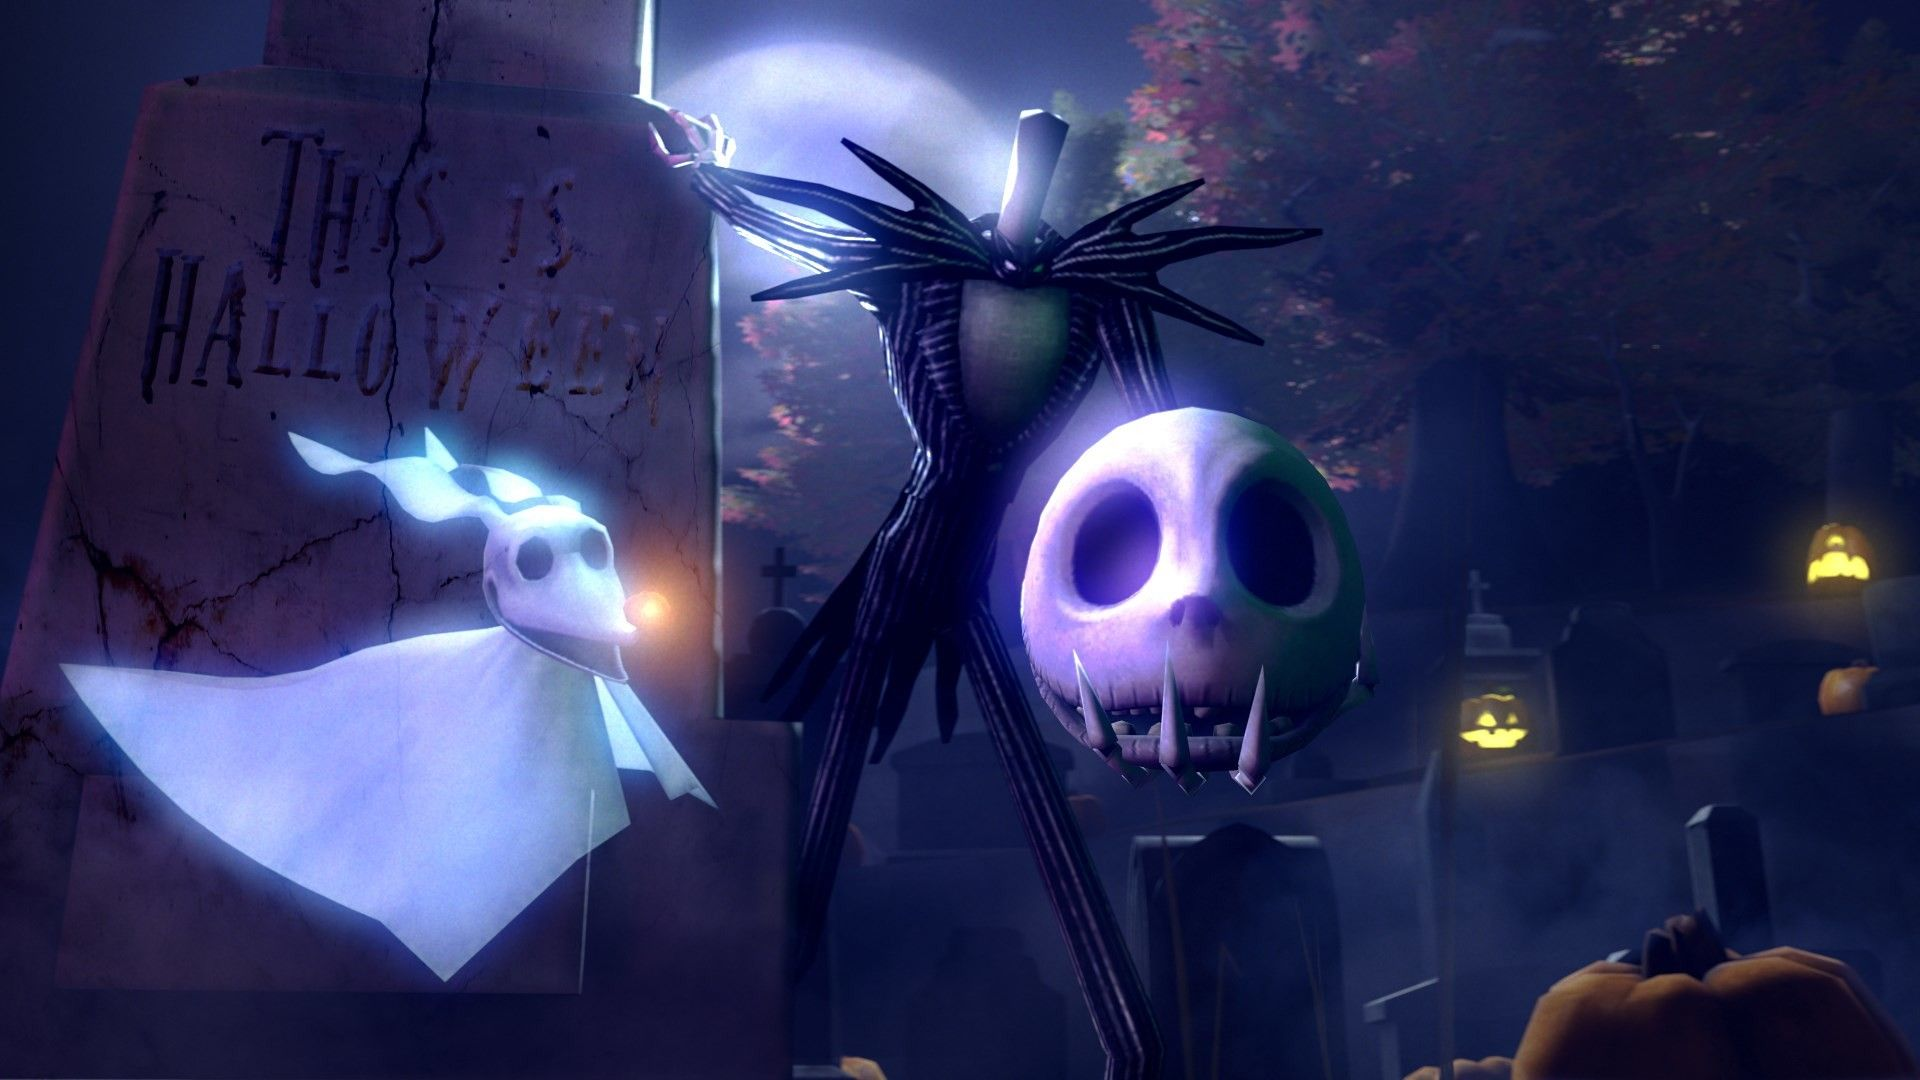 1920x1080 Jack Skellington Nightmare Before Christmas Pc Wallpaper Nightmare Before Christmas Wallpaper Halloween Wallpaper Halloween Art